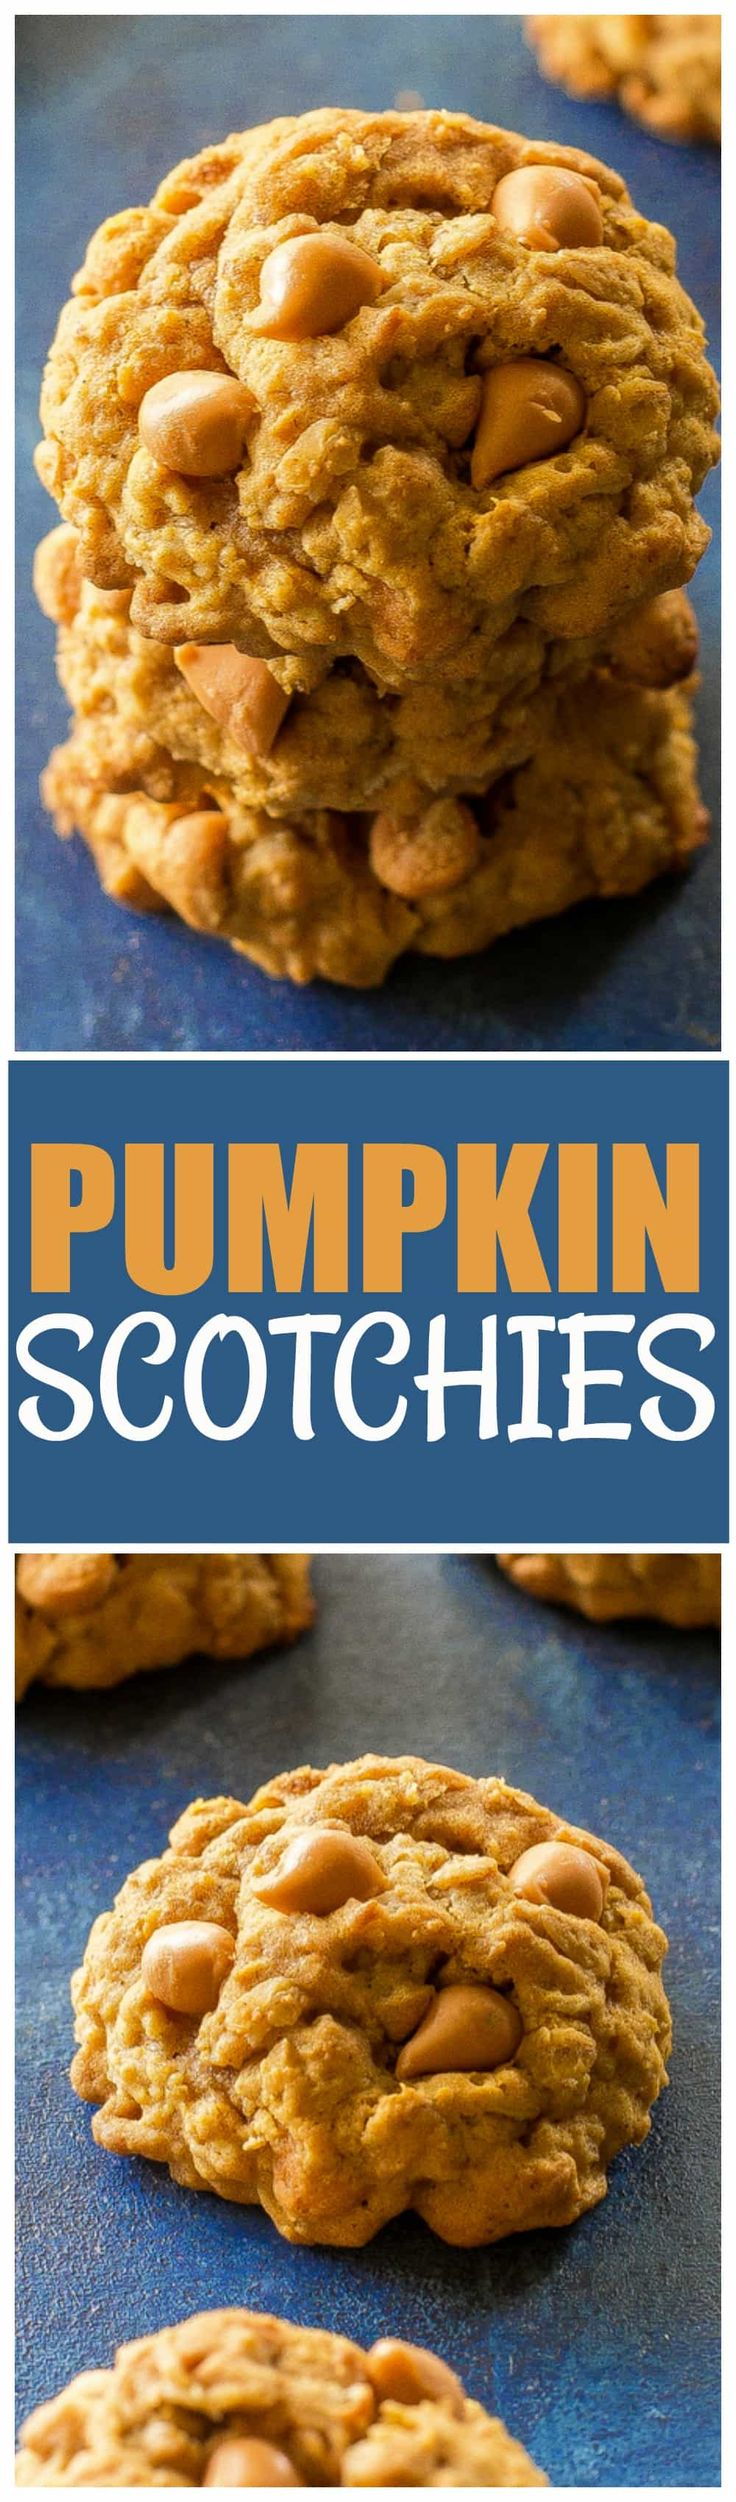 These Pumpkin Scotchies are a twist on your classic oatmeal butterscotch  cookies. Full of fall